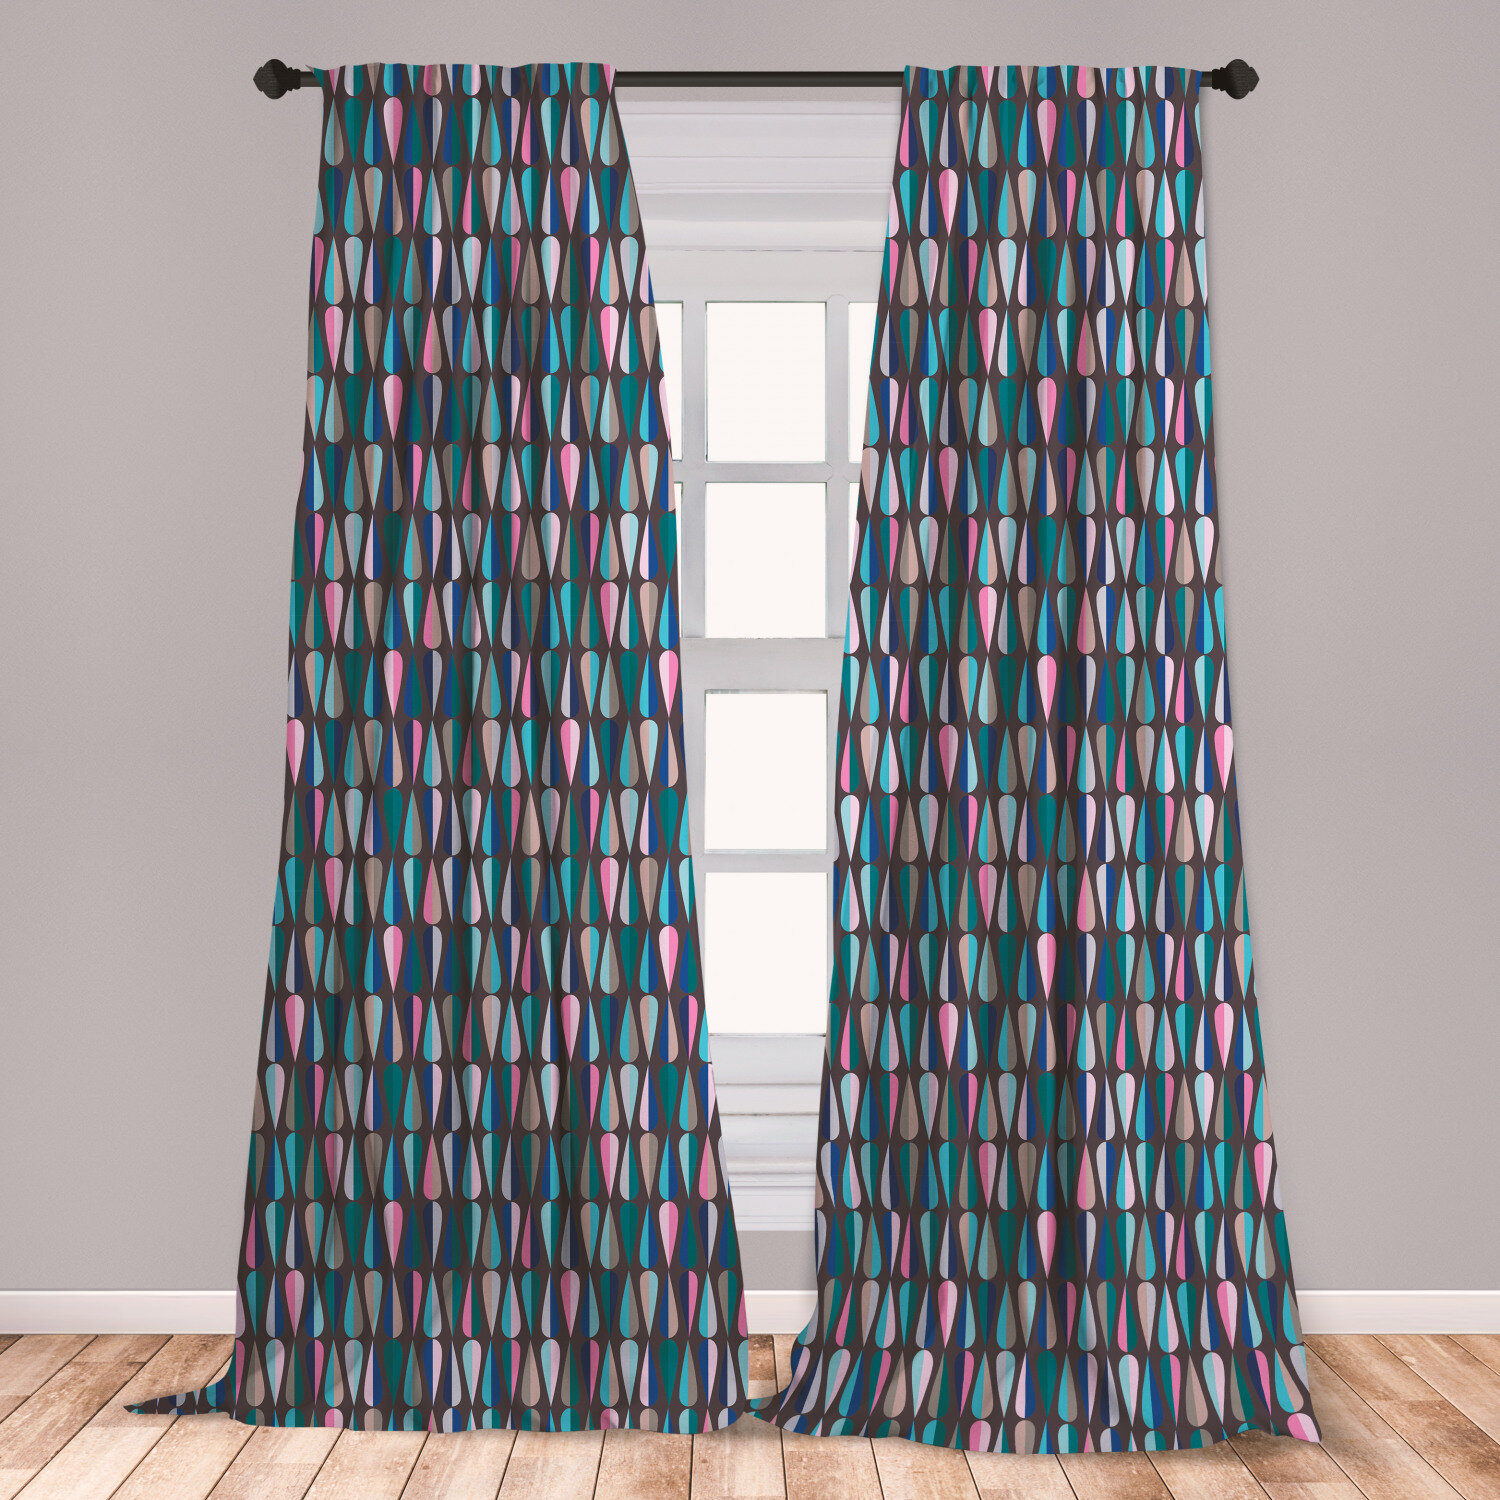 East Urban Home Ambesonne Mid Century Curtains Modern Style Retro Pattern With Droplet Shapes Mosaic In Various Color Tones Window Treatments 2 Panel Set For Living Room Bedroom Decor 56 X 84 Multicolor Wayfair